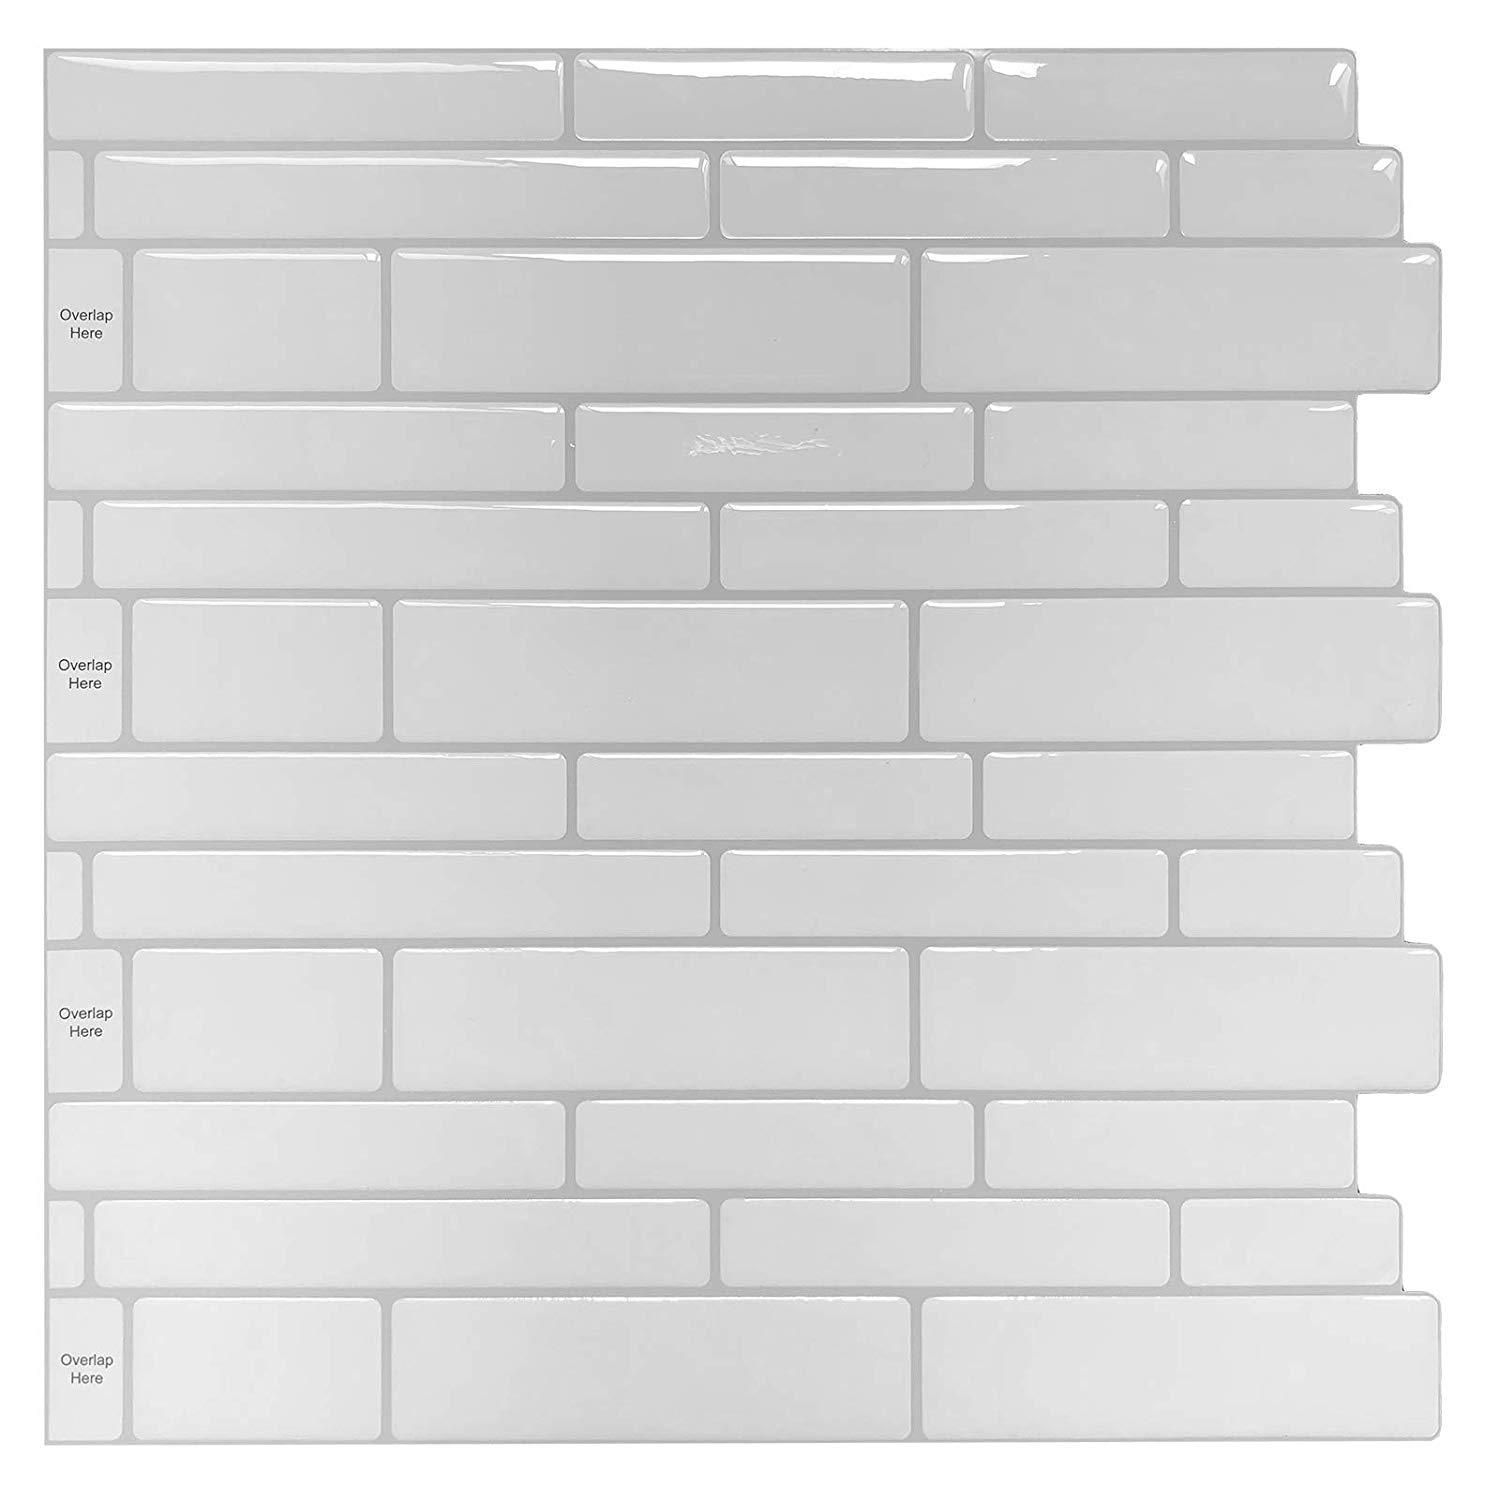 10 Sheets Peel And Stick Tile For Kitchen Backsplash 12 X12 White Subway Tile With Grey Grount Peel N Stick Backsplash Stick Tile Backsplash Stick On Tiles